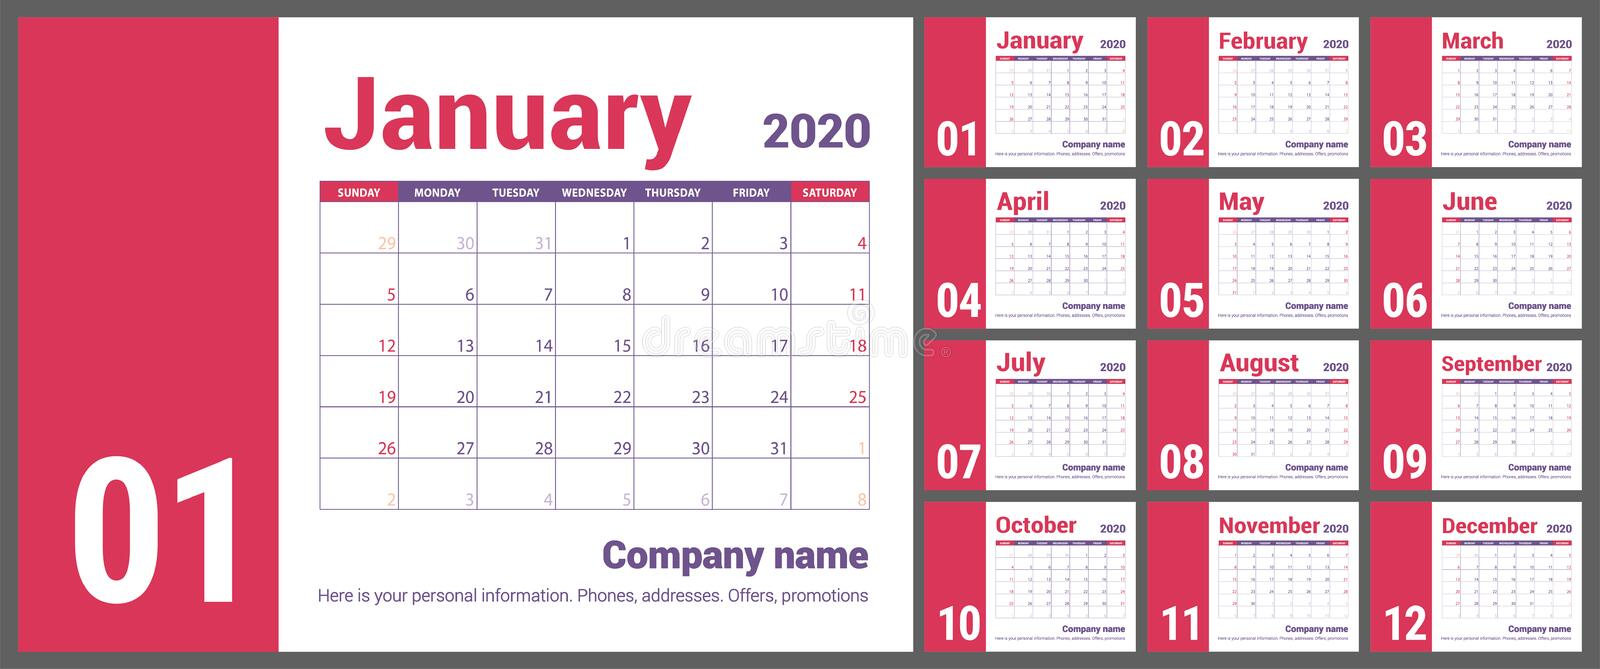 2020 calendar. English calender. Color vector template. Week starts on Sunday. Business planning. New year planner. Design royalty free illustration